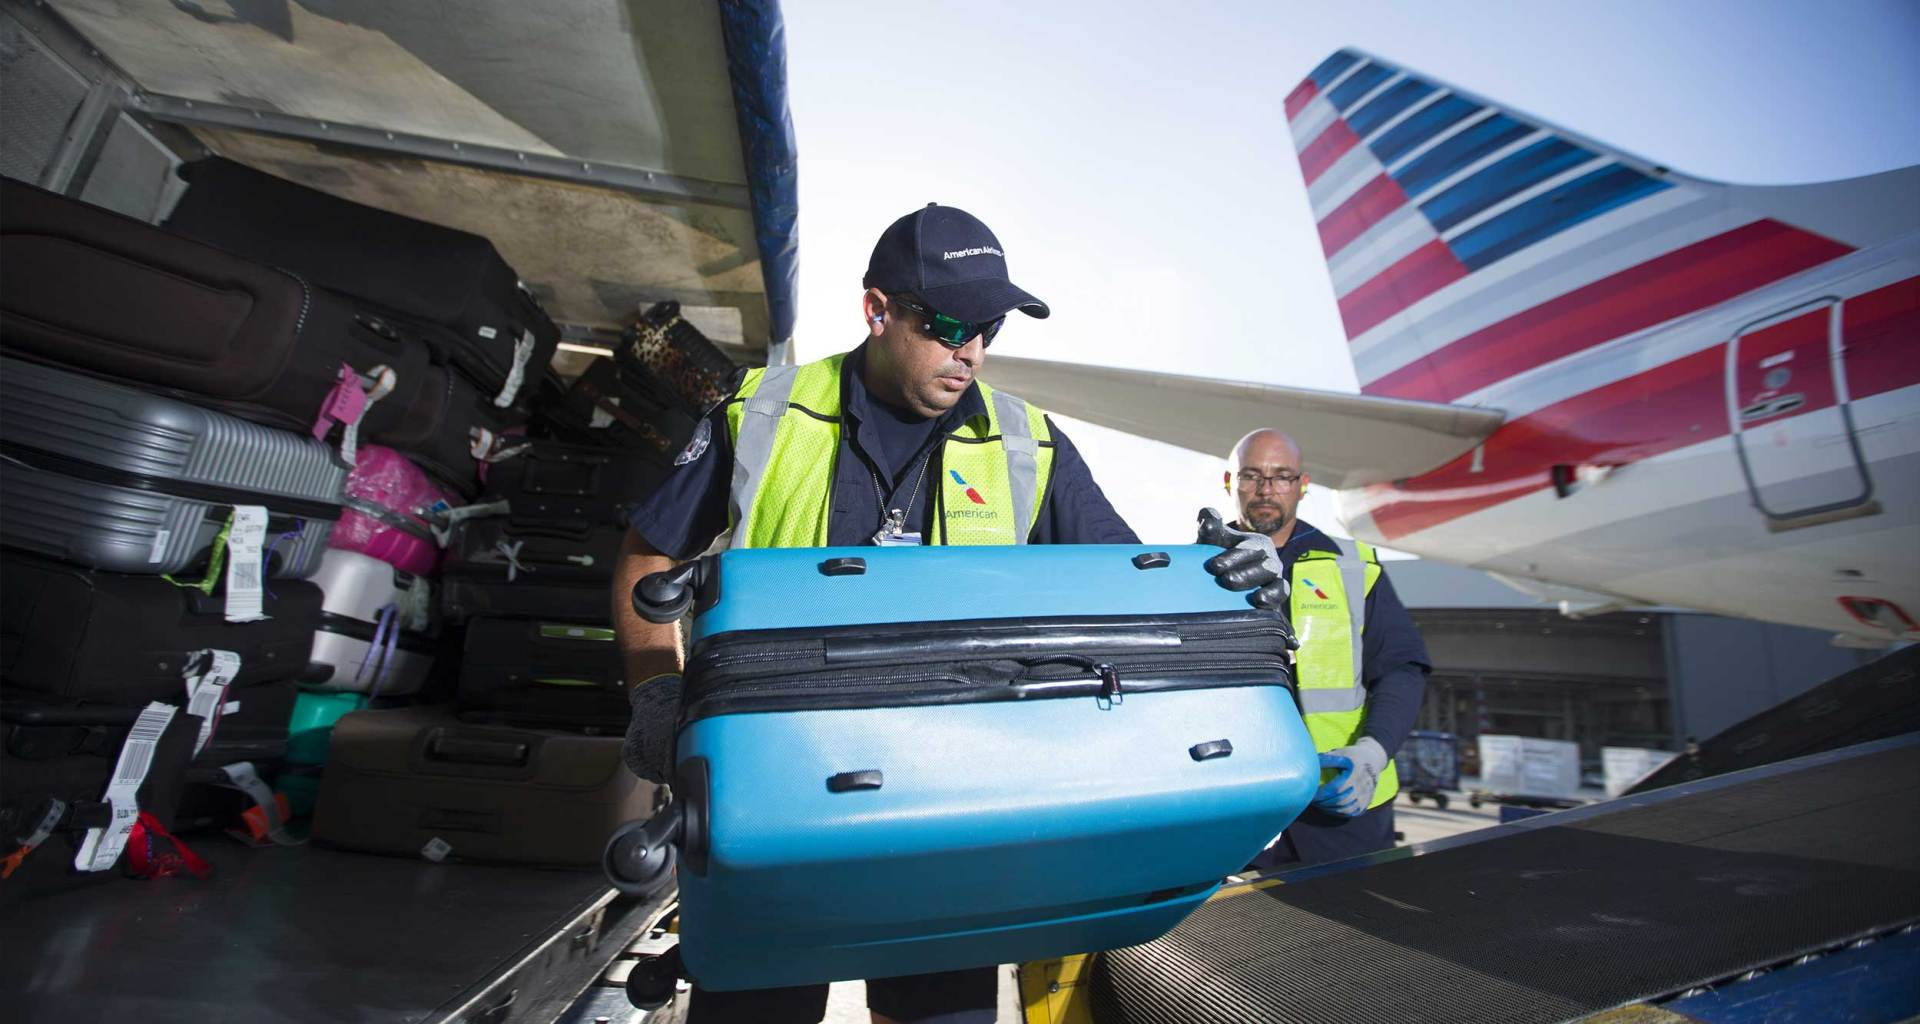 Baggage handler transferring suitcase from baggage cart into American Airlines airplane.